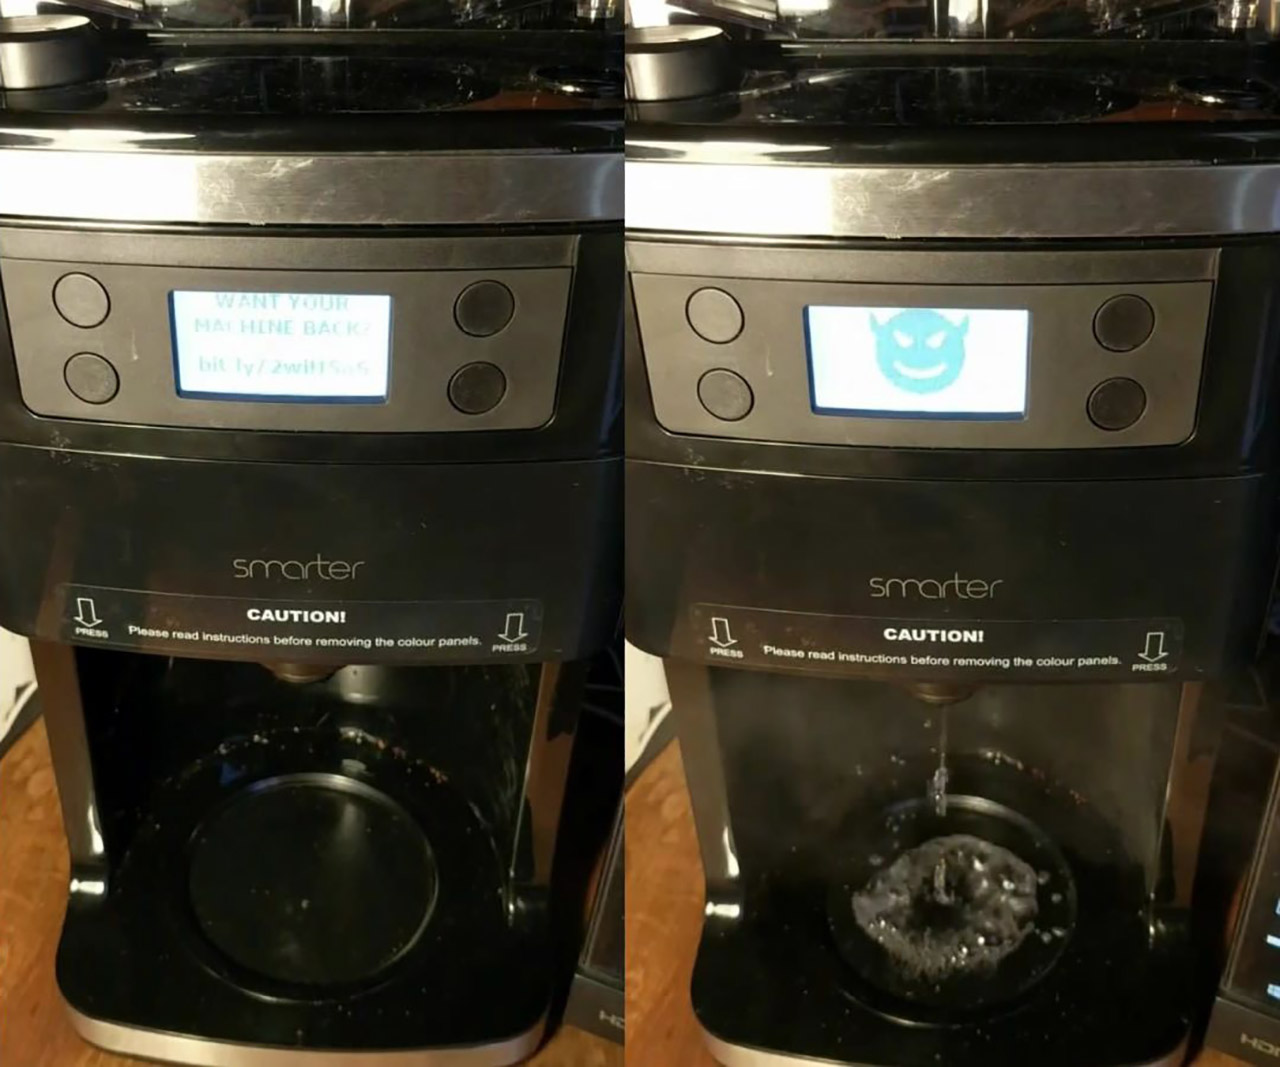 Hacked Coffee Maker Ransom